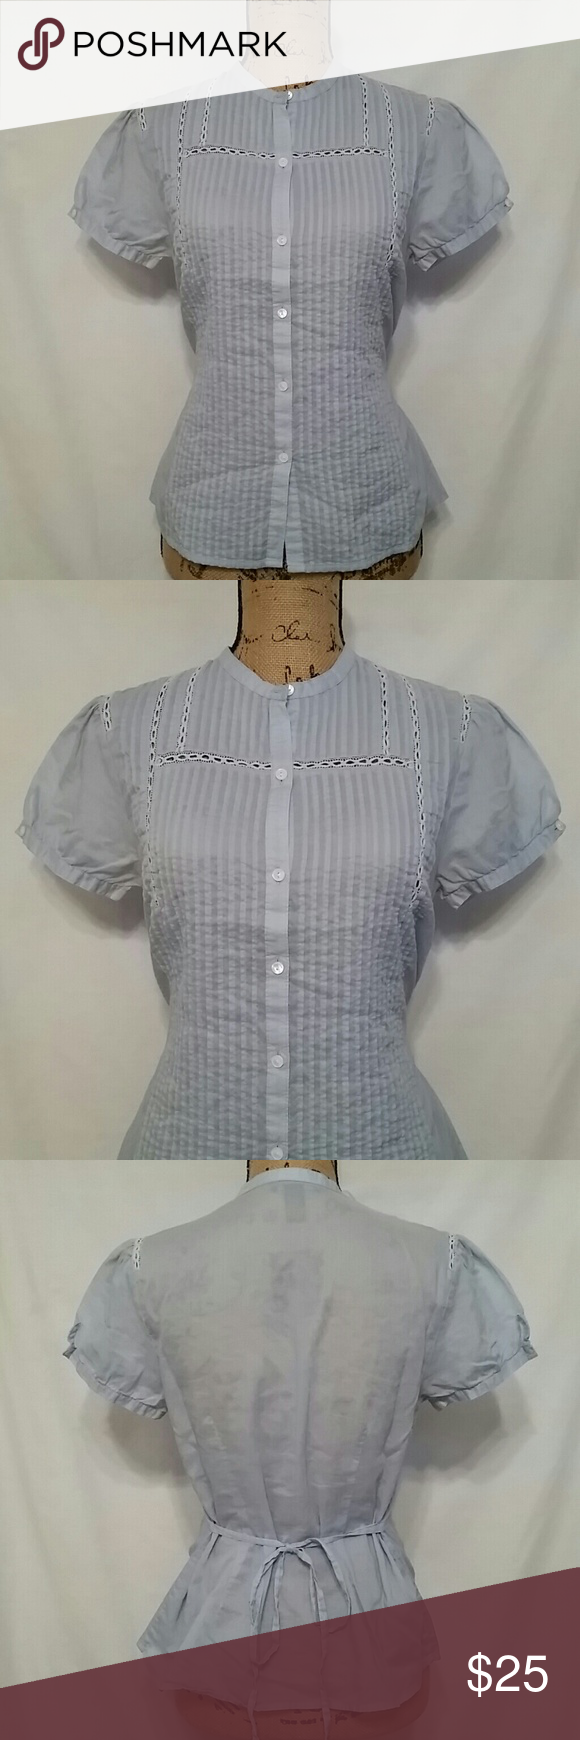 Lucky Brand blouse Detailed button up top, ties in the back Lucky Brand Tops Button Down Shirts